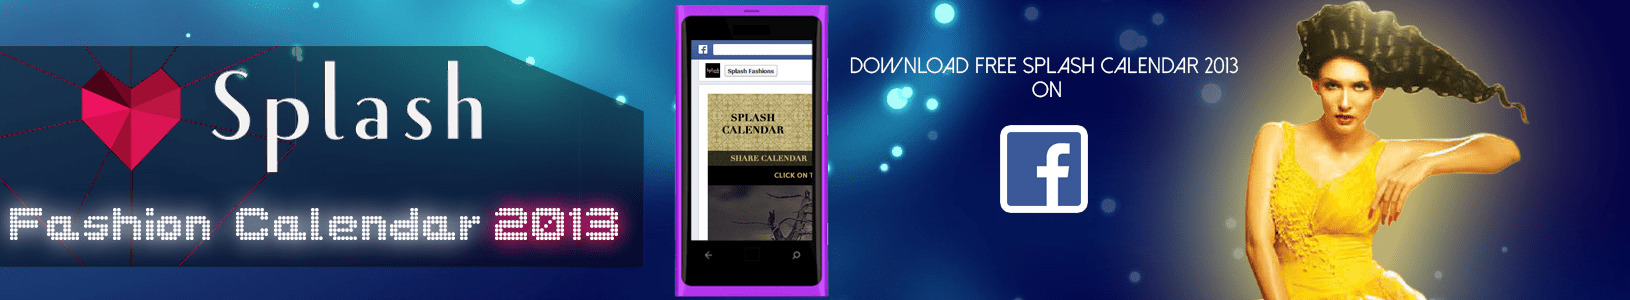 facebook-app-development-company-splash-calender-120x120